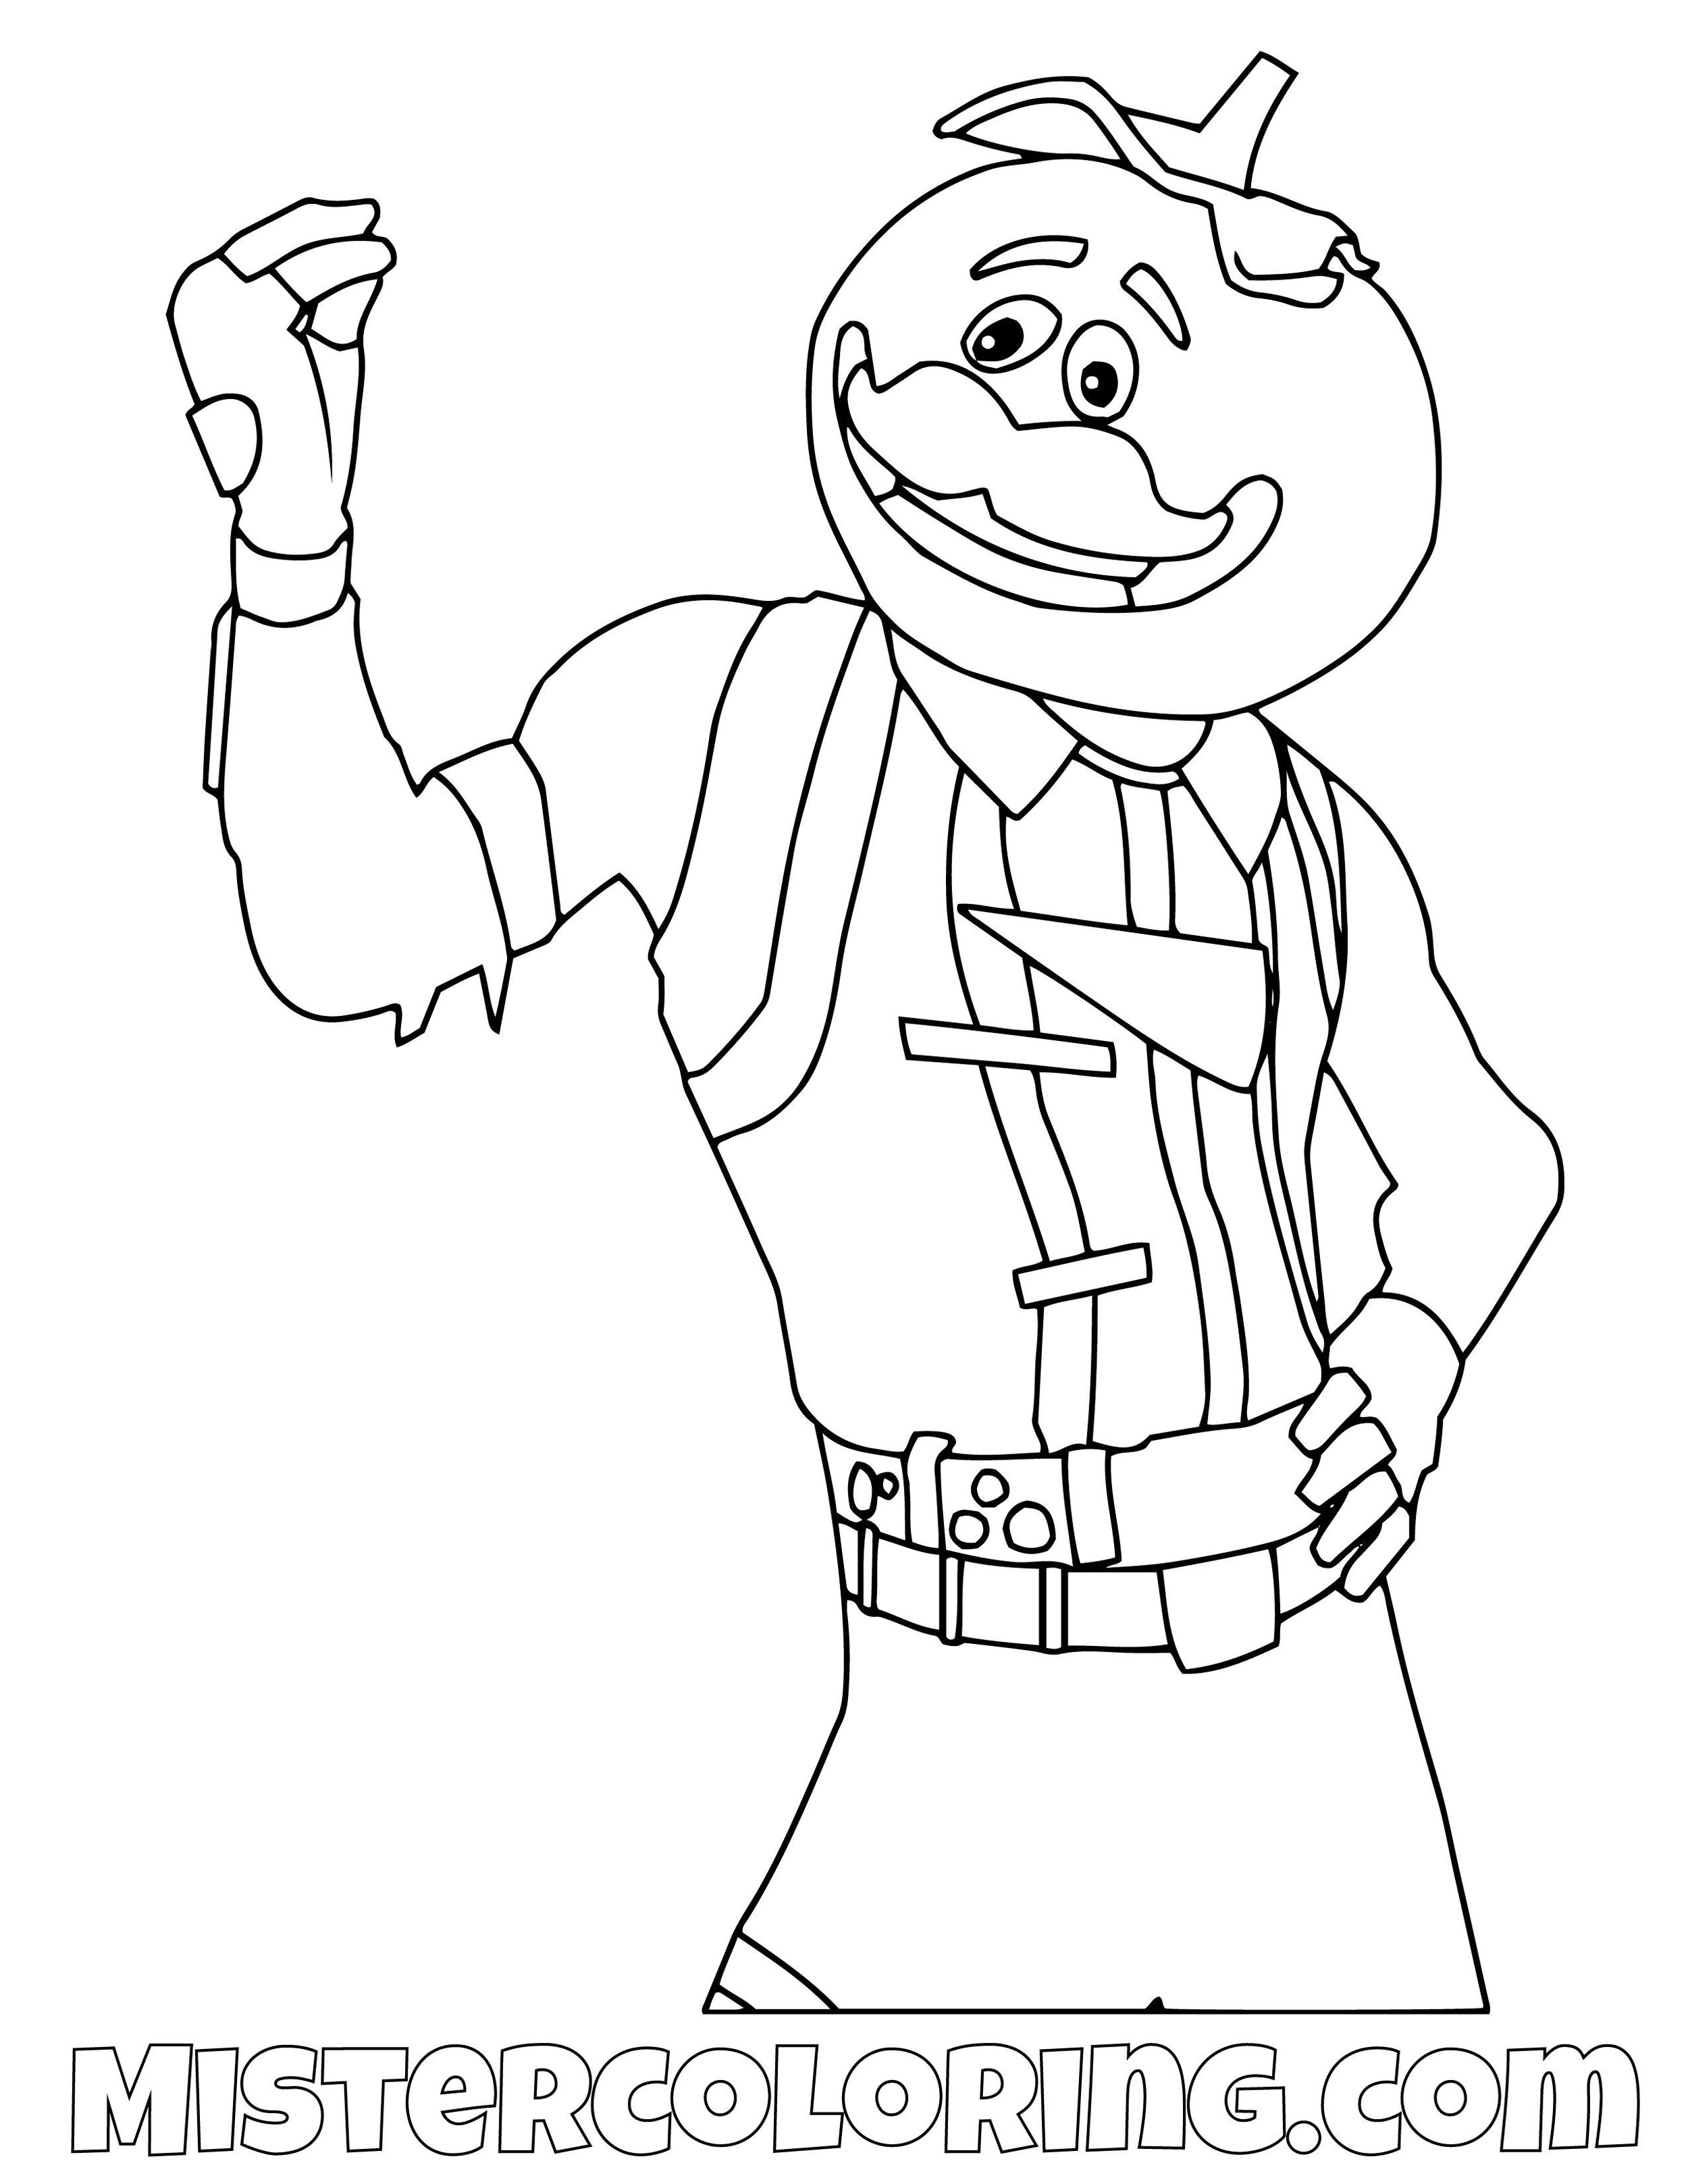 Level 1 Omega Fortnite Coloring Pages Peely